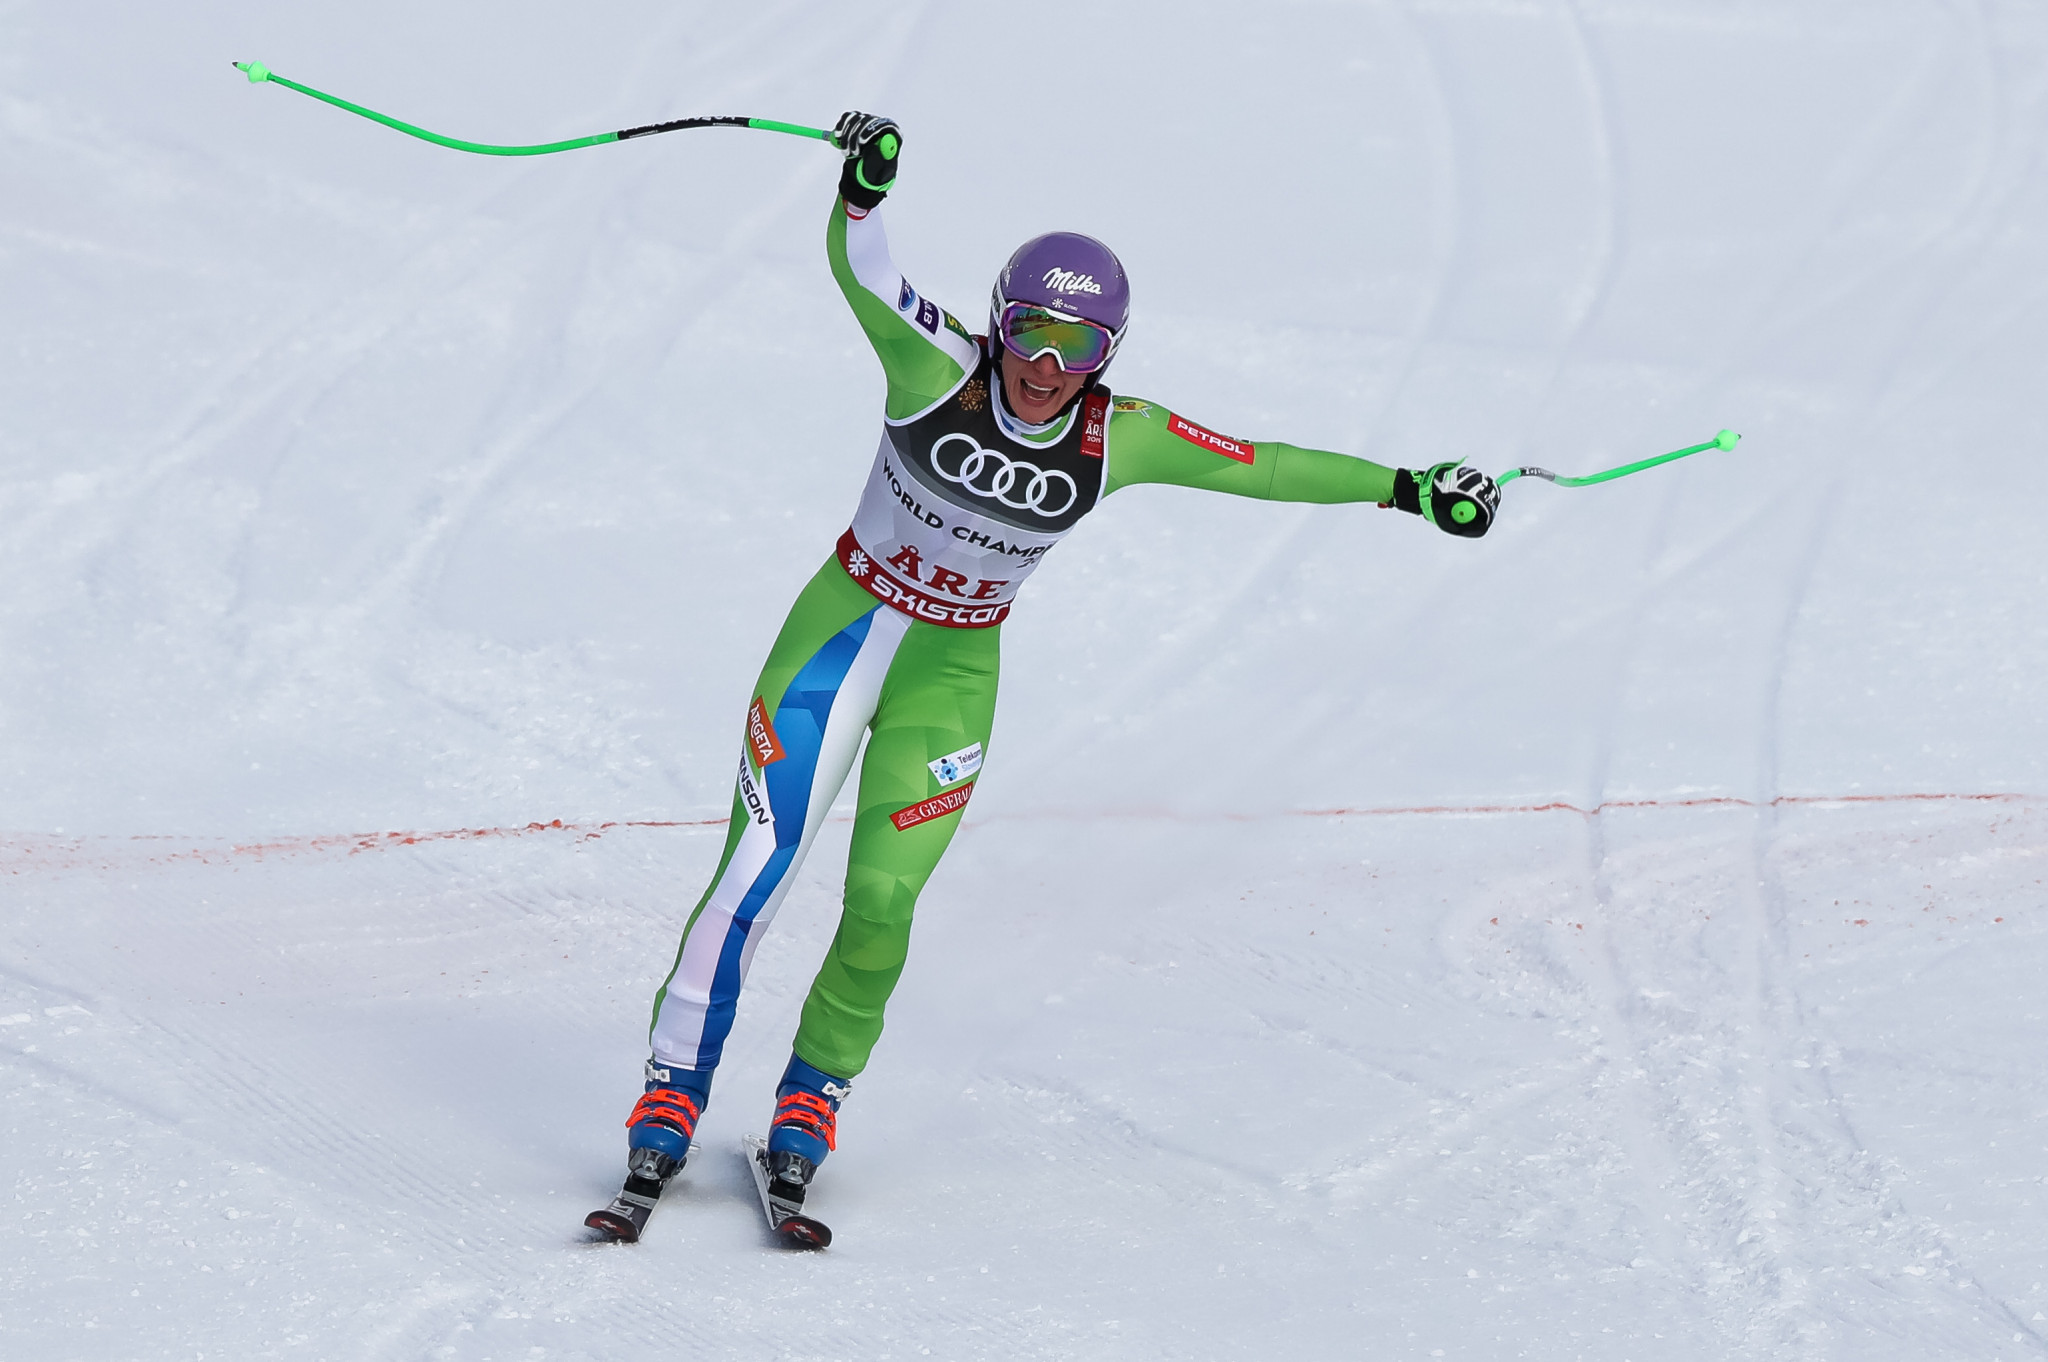 Štuhec defends downhill title as Vonn bows out with bronze at FIS Alpine Skiing World Championships